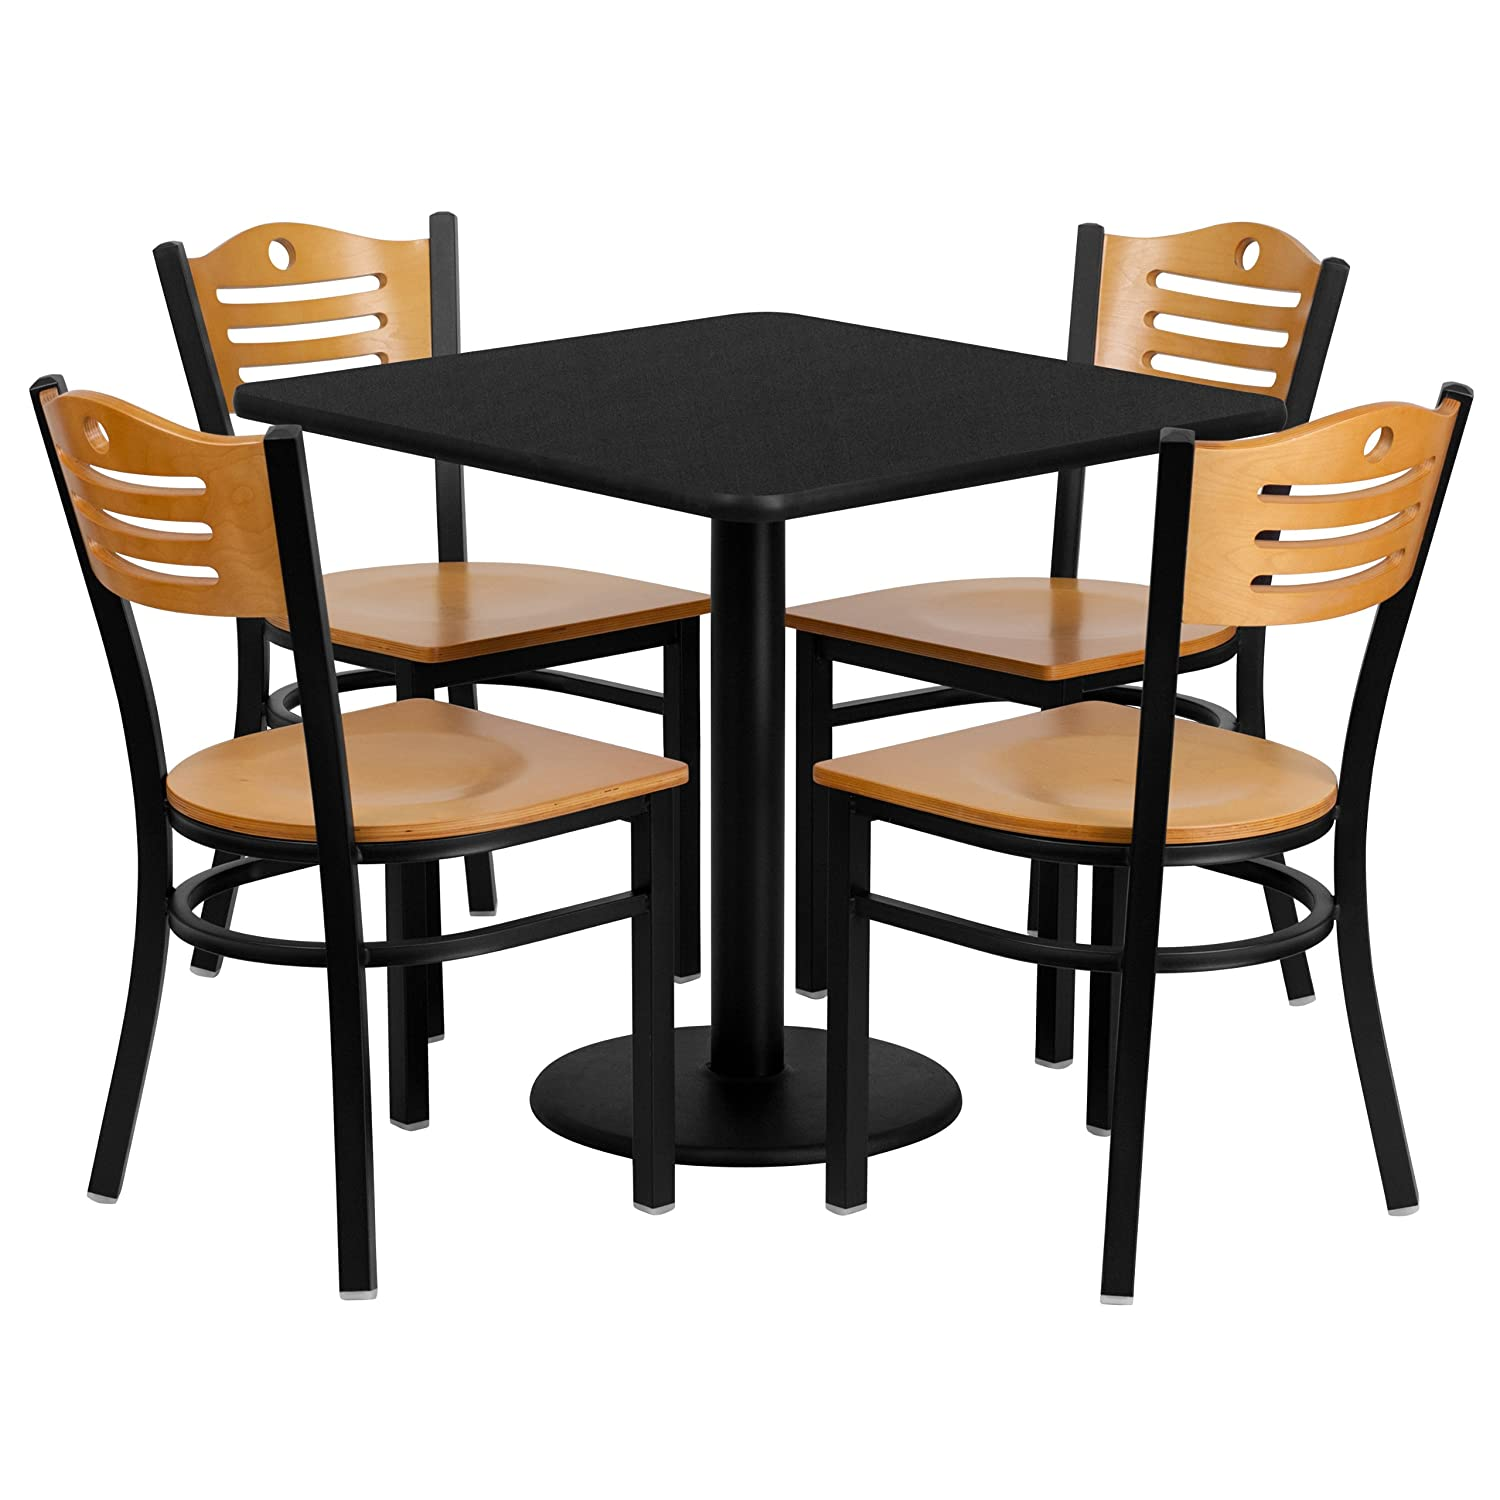 Amazon.com: Flash Furniture 30u0027u0027 Square Black Laminate Table Set With 4  Wood Slat Back Metal Chairs   Natural Wood Seat: Kitchen U0026 Dining Part 61